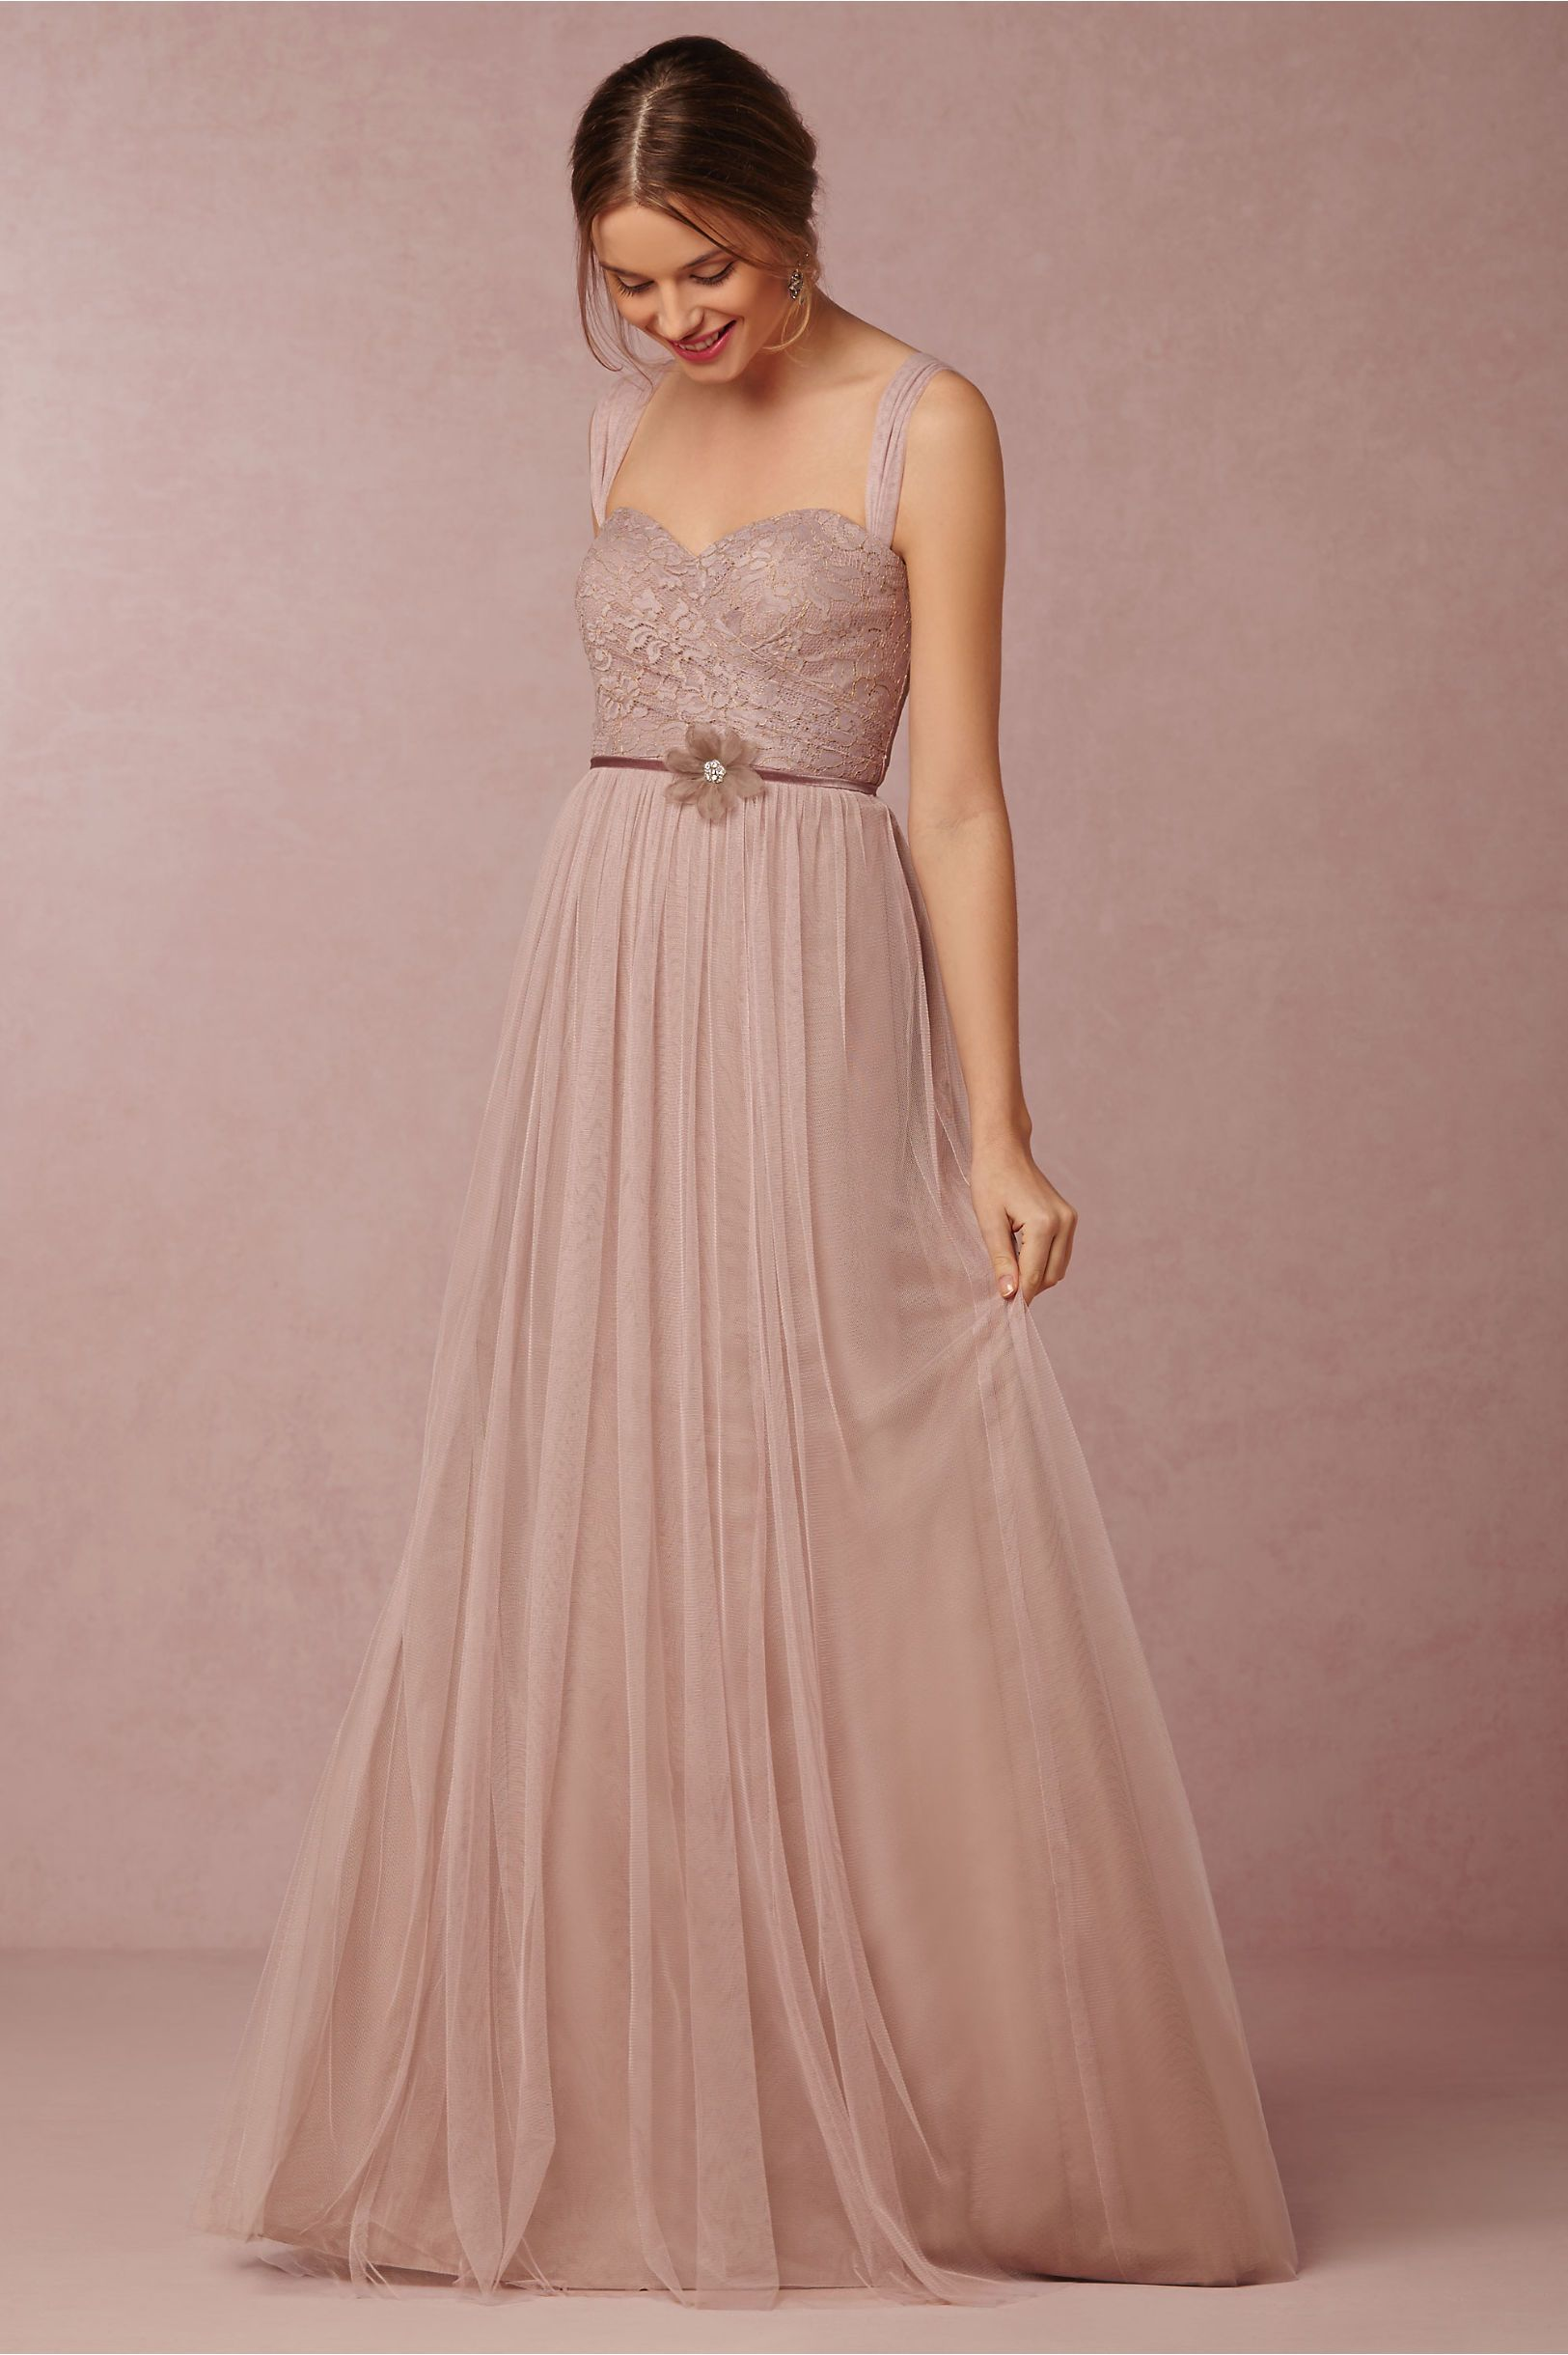 Juliette Bridesmaids Dress in rose quartz from @BHLDN | Bridesmaids ...